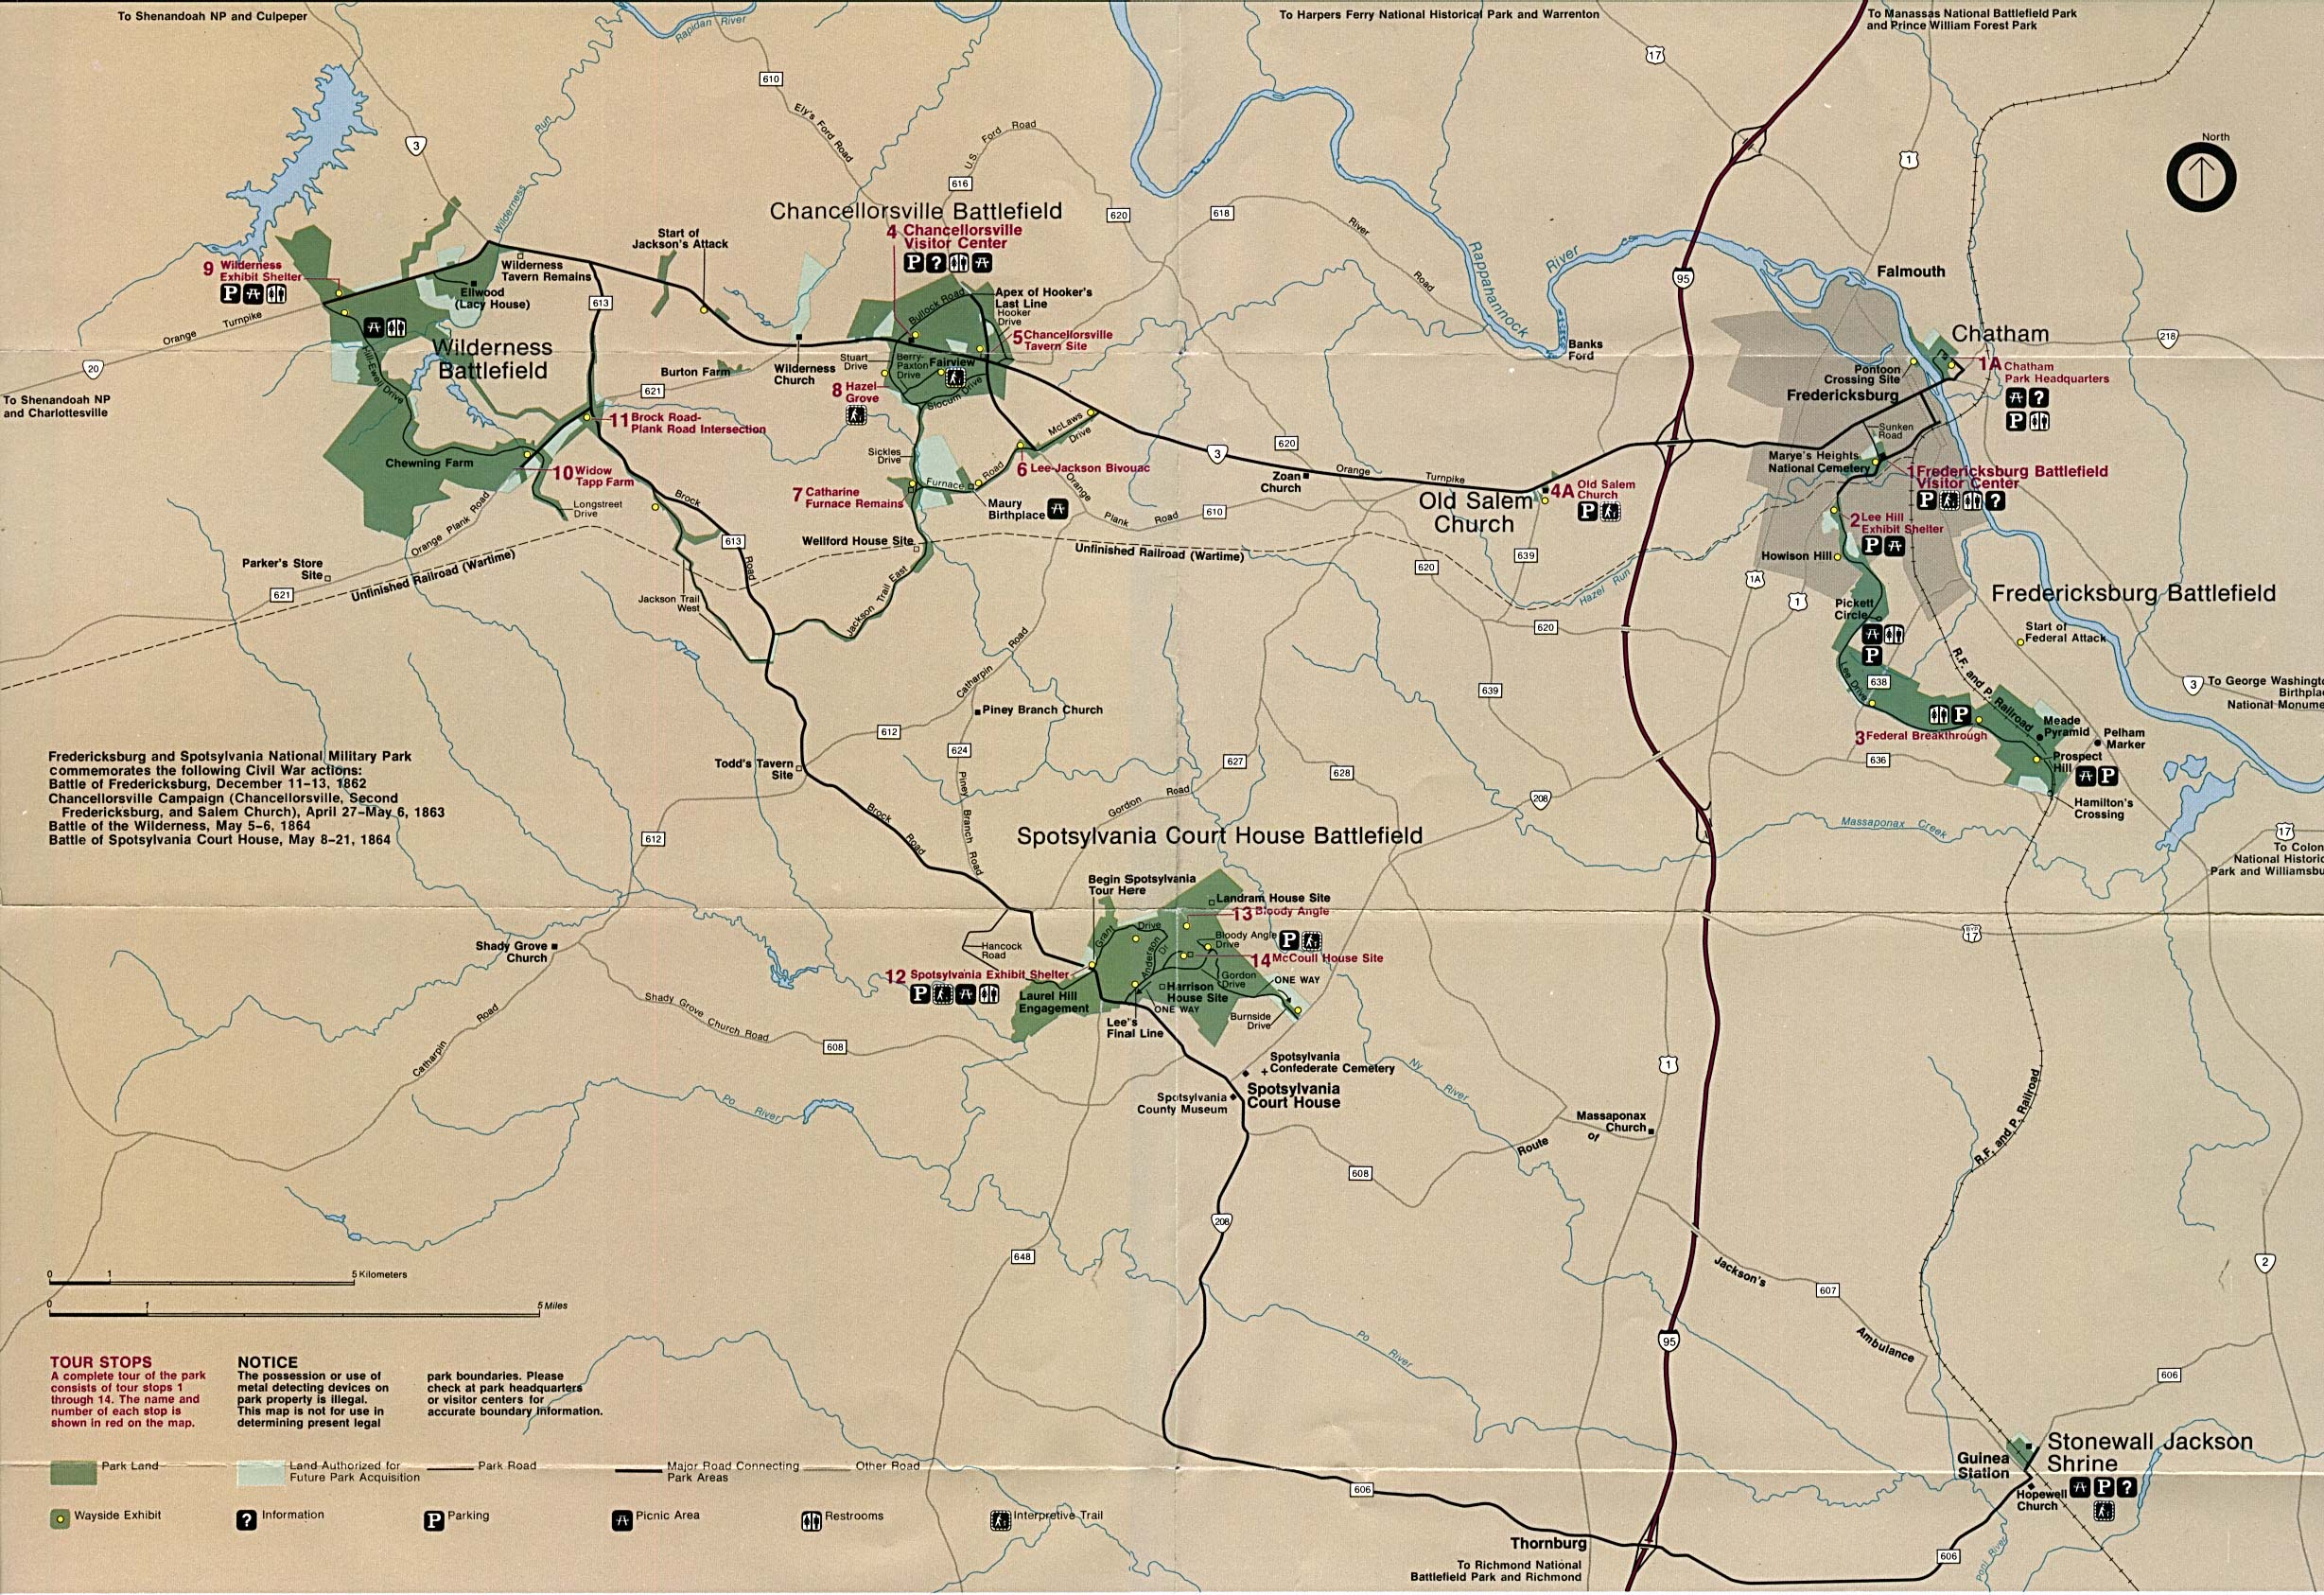 Maps of United States National Parks, Monuments and Historic Sites Fredericksburg and Spotsylvania National Military Park [Virginia] (Area Map) (717K)